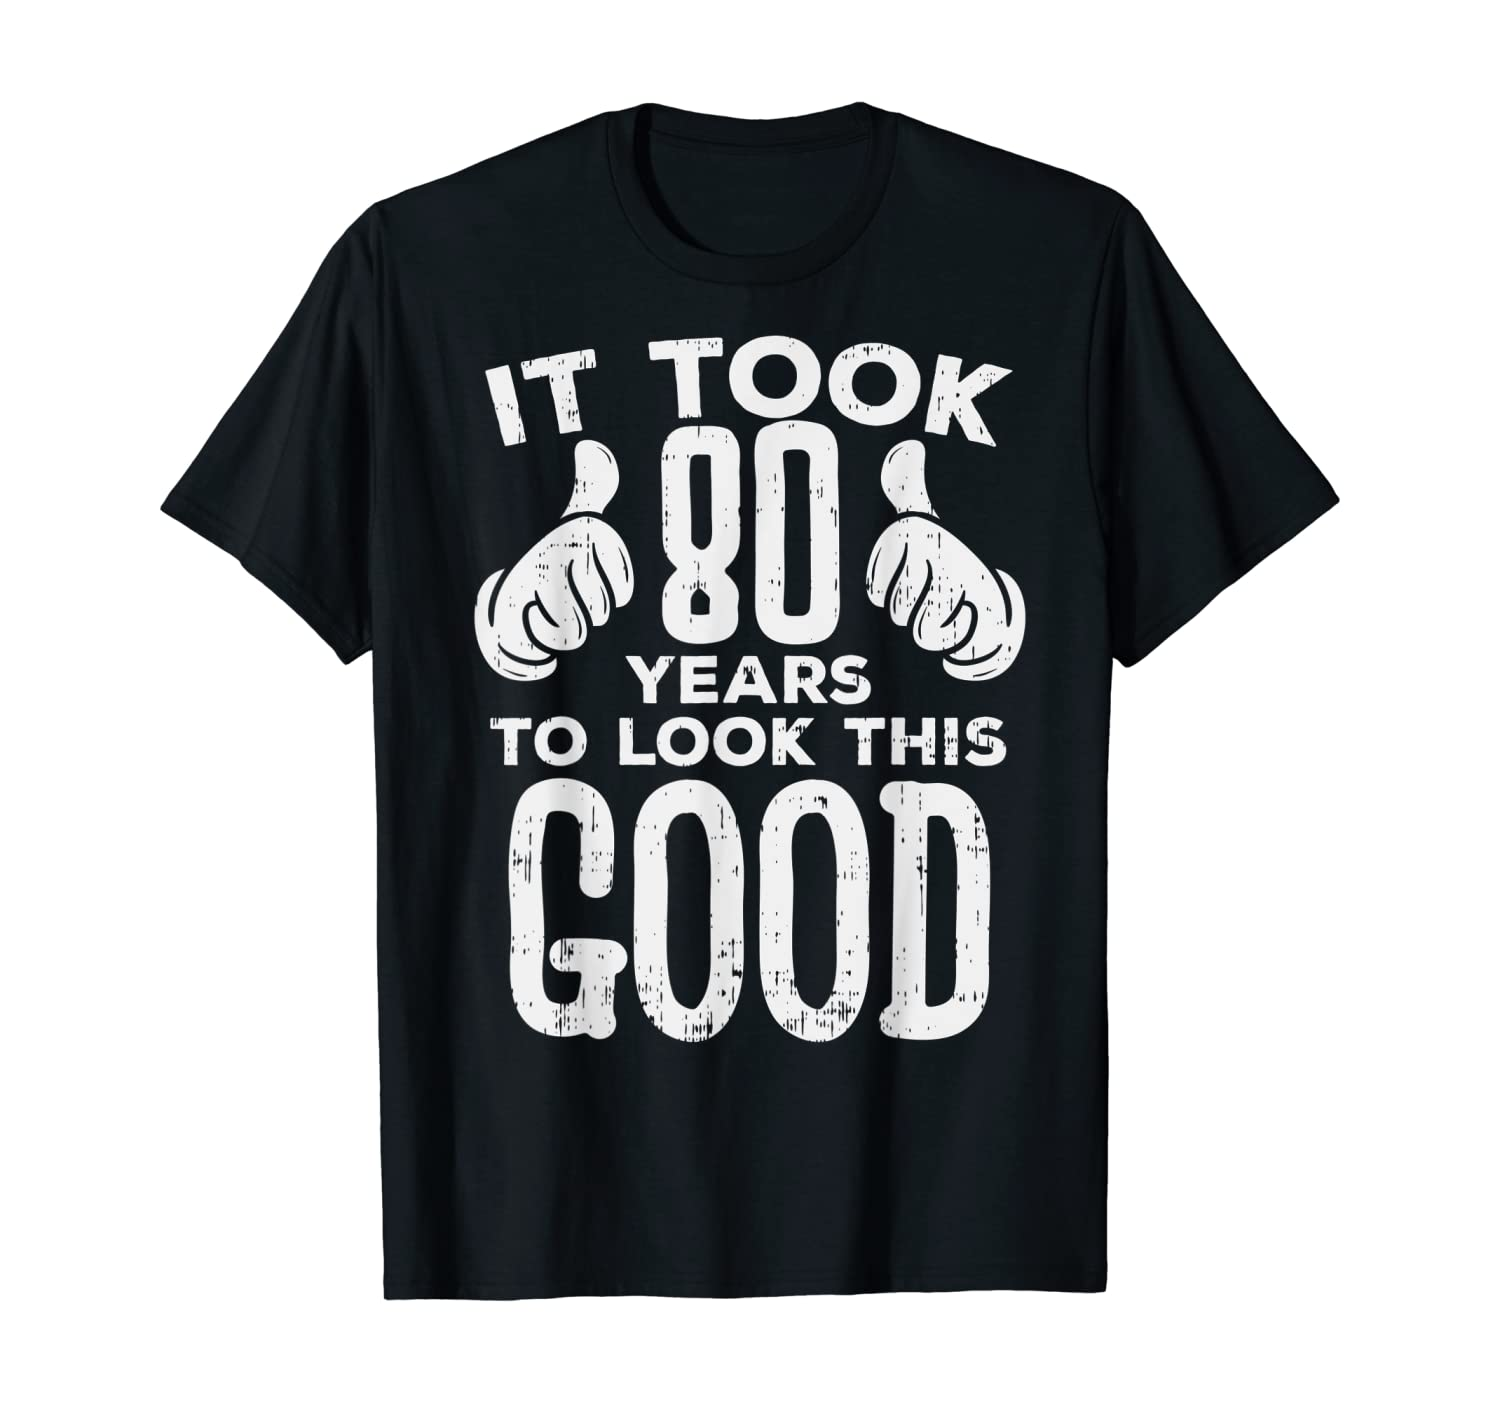 Took Me 80 Years To Look This Good 80th Birthday Gift 1940 T-Shirt